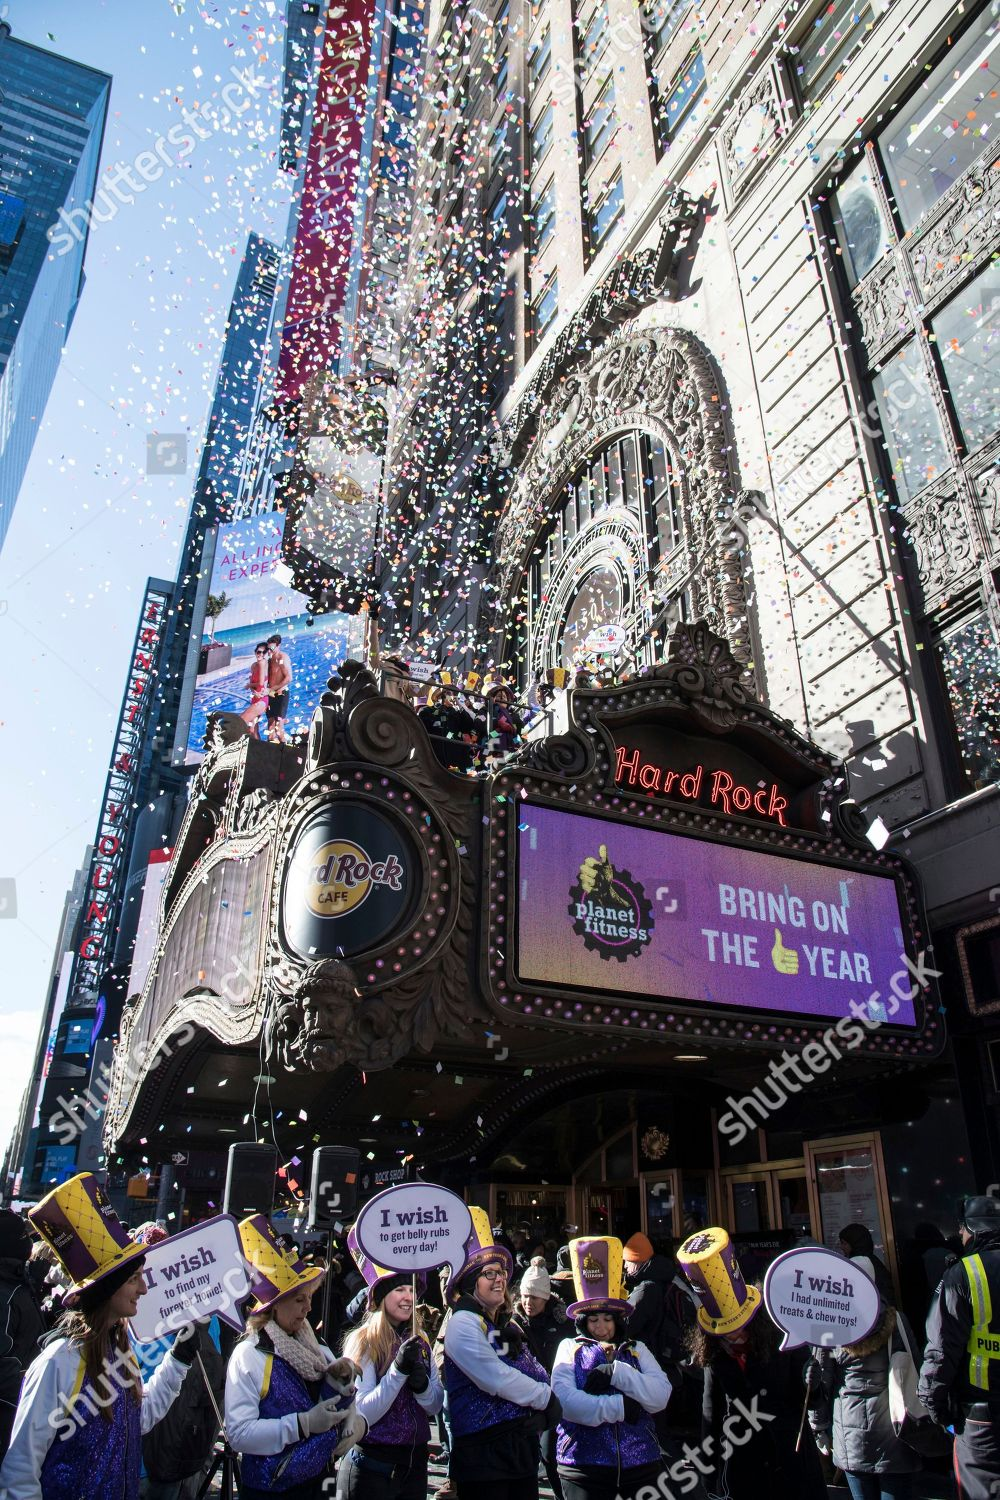 Planet Fitness Hours New Year's Day : planet, fitness, hours, year's, Presenting, Sponsor, Times, Squares, Years, Editorial, Stock, Photo, Image, Shutterstock